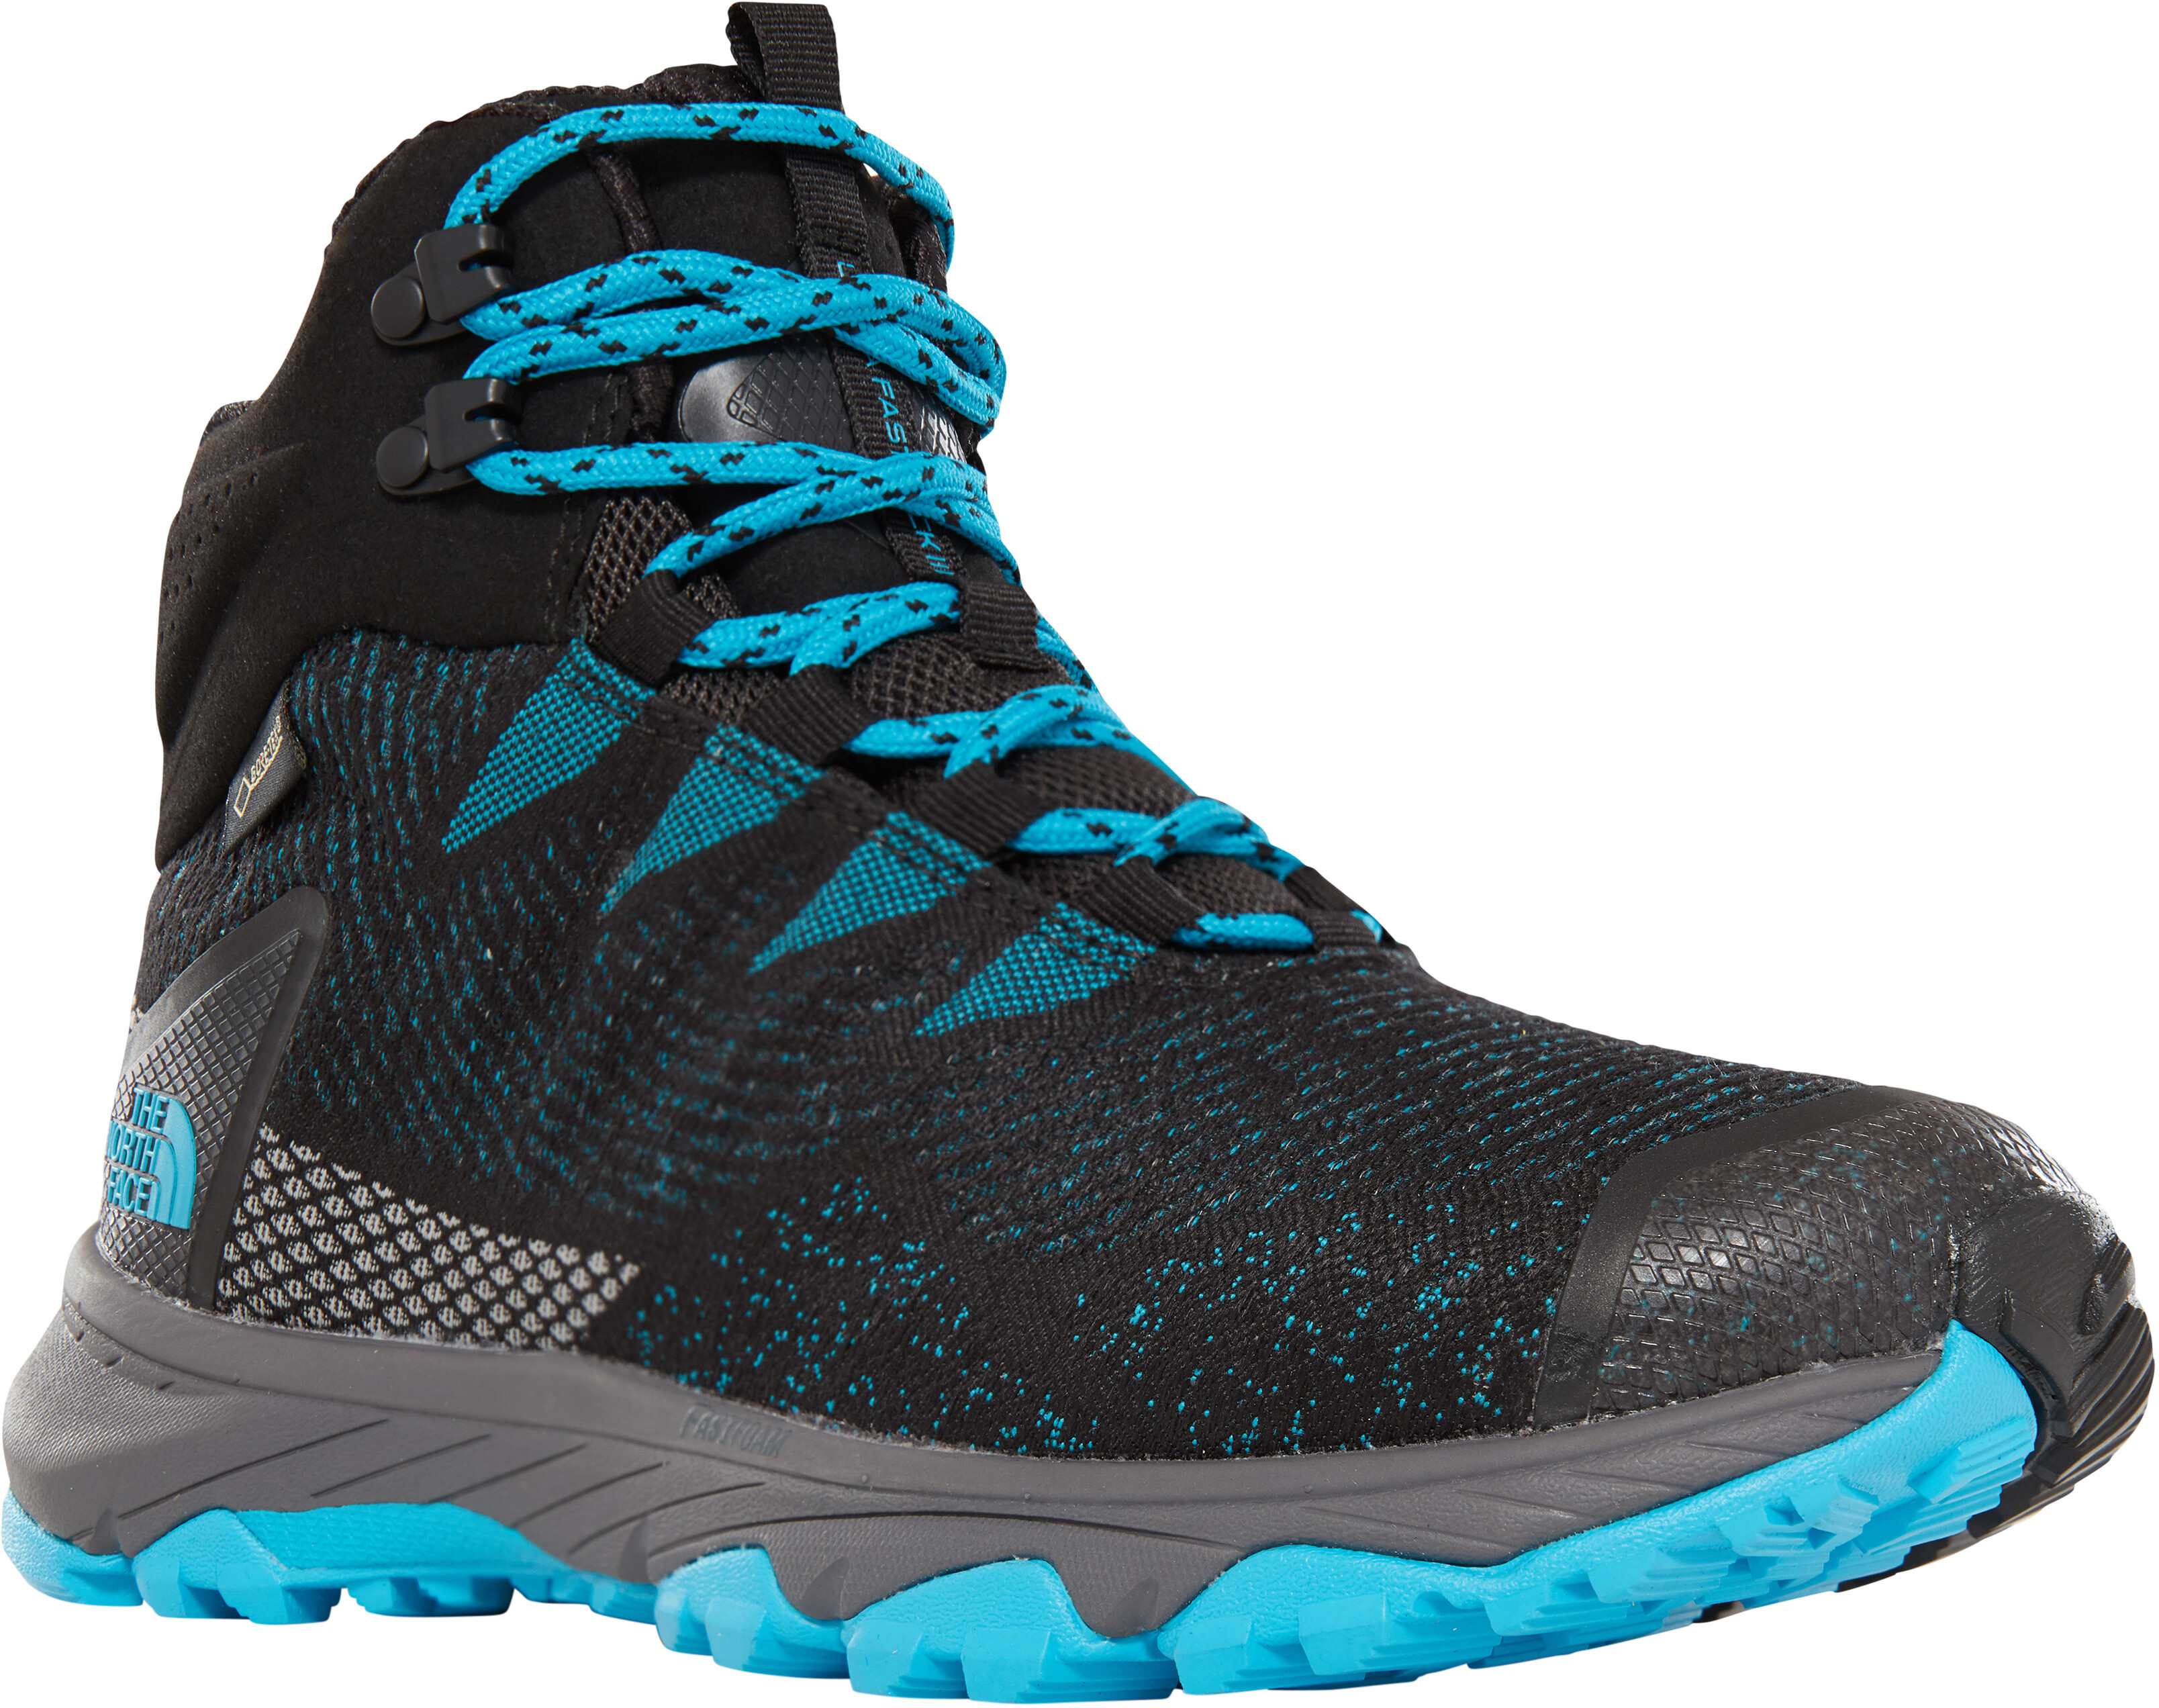 ca48f70d5 The North Face Ultra Fastpack III Mid GTX Woven Shoes Women tnf  black/meridian blue